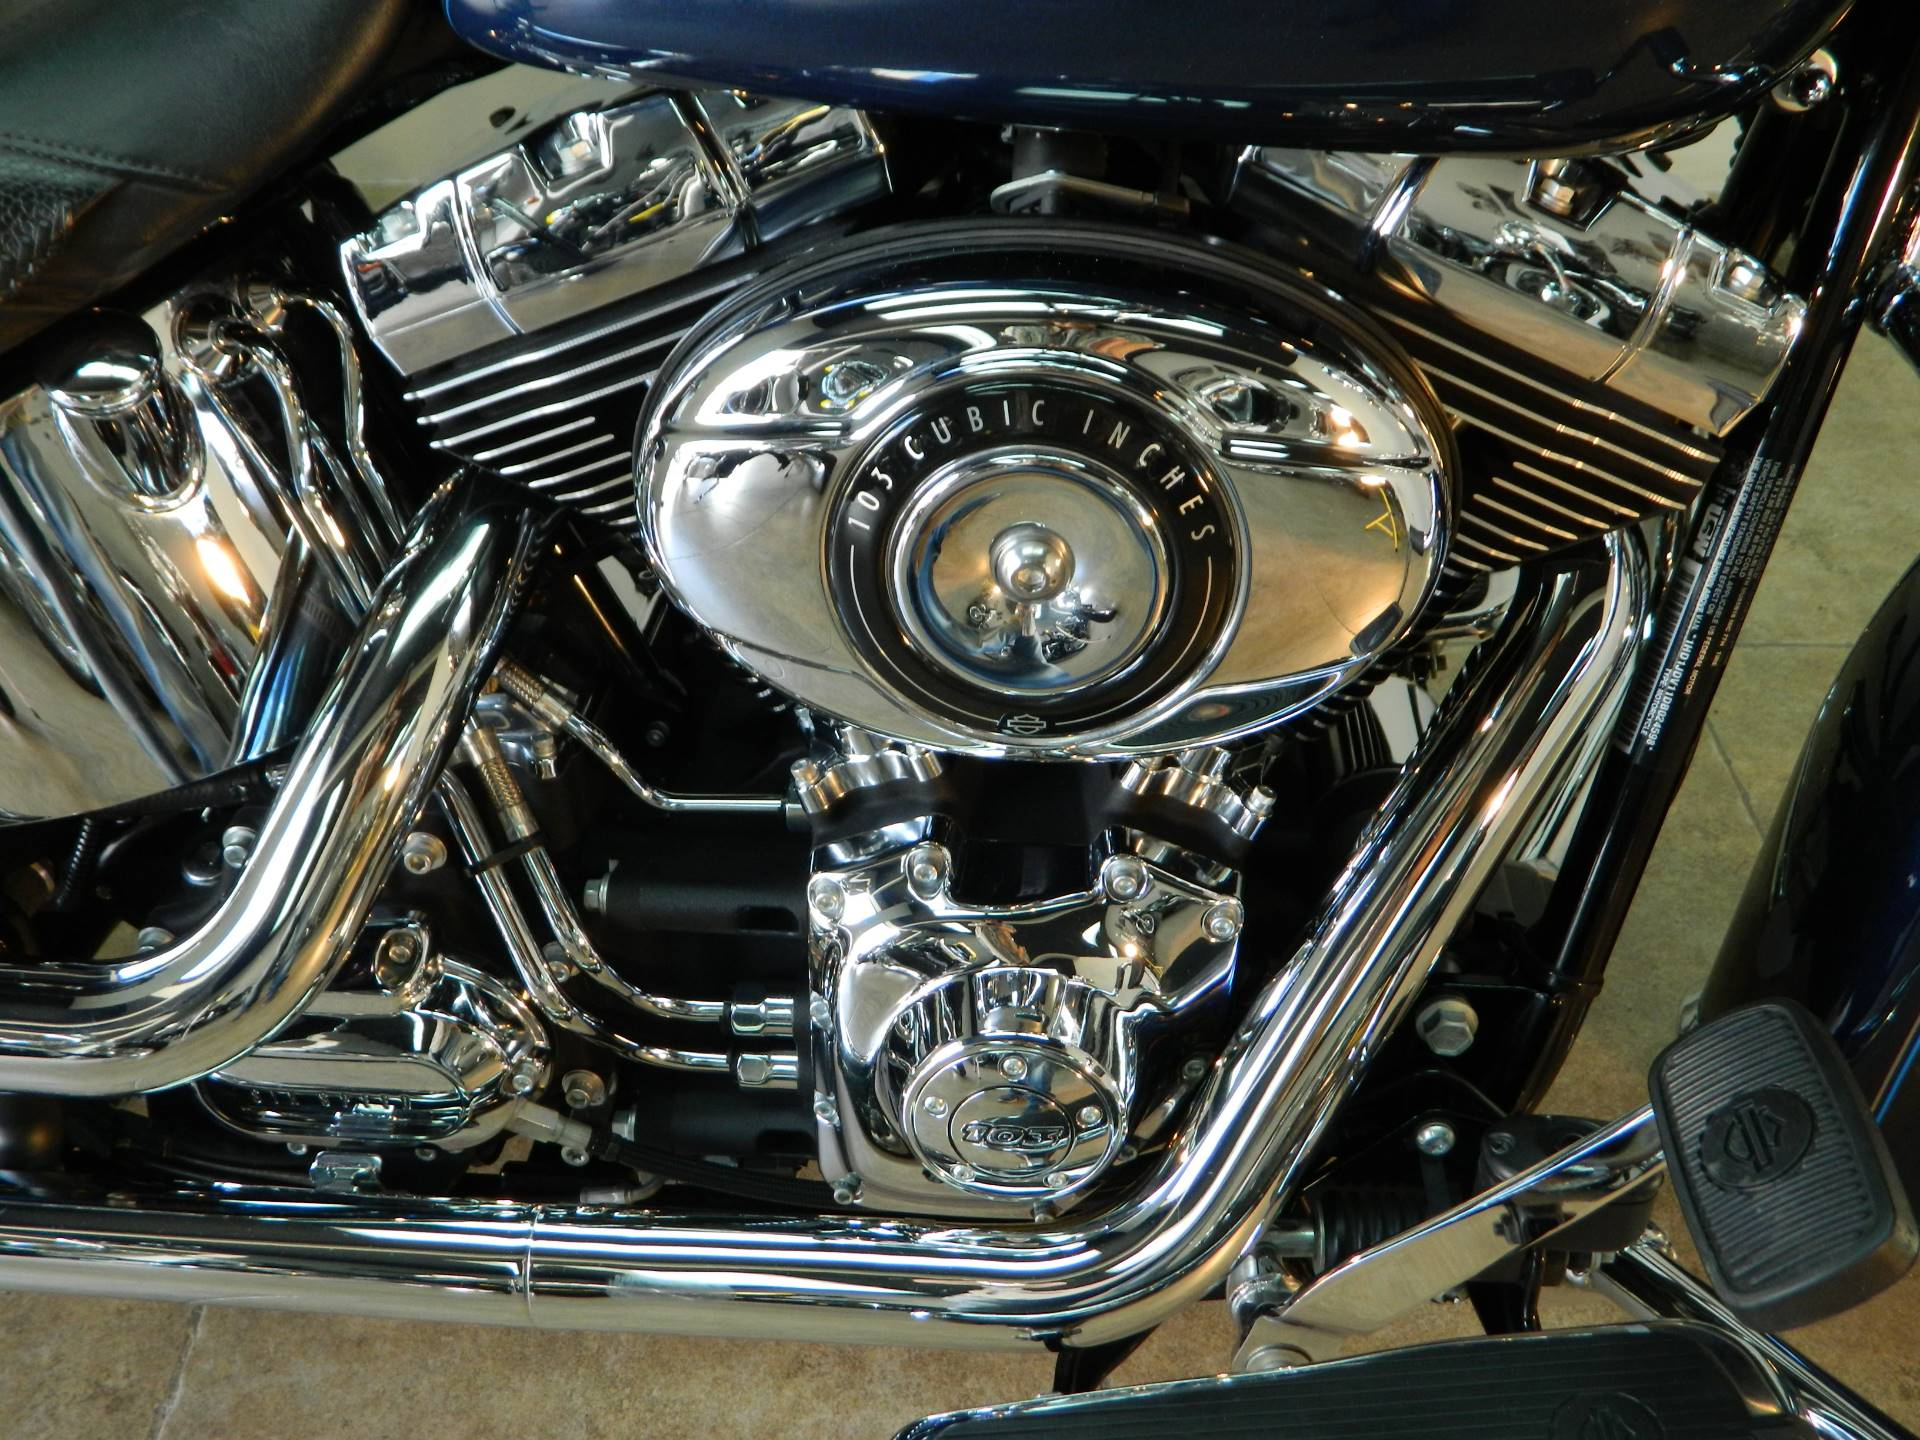 2013 Harley-Davidson Softail® Deluxe in Temecula, California